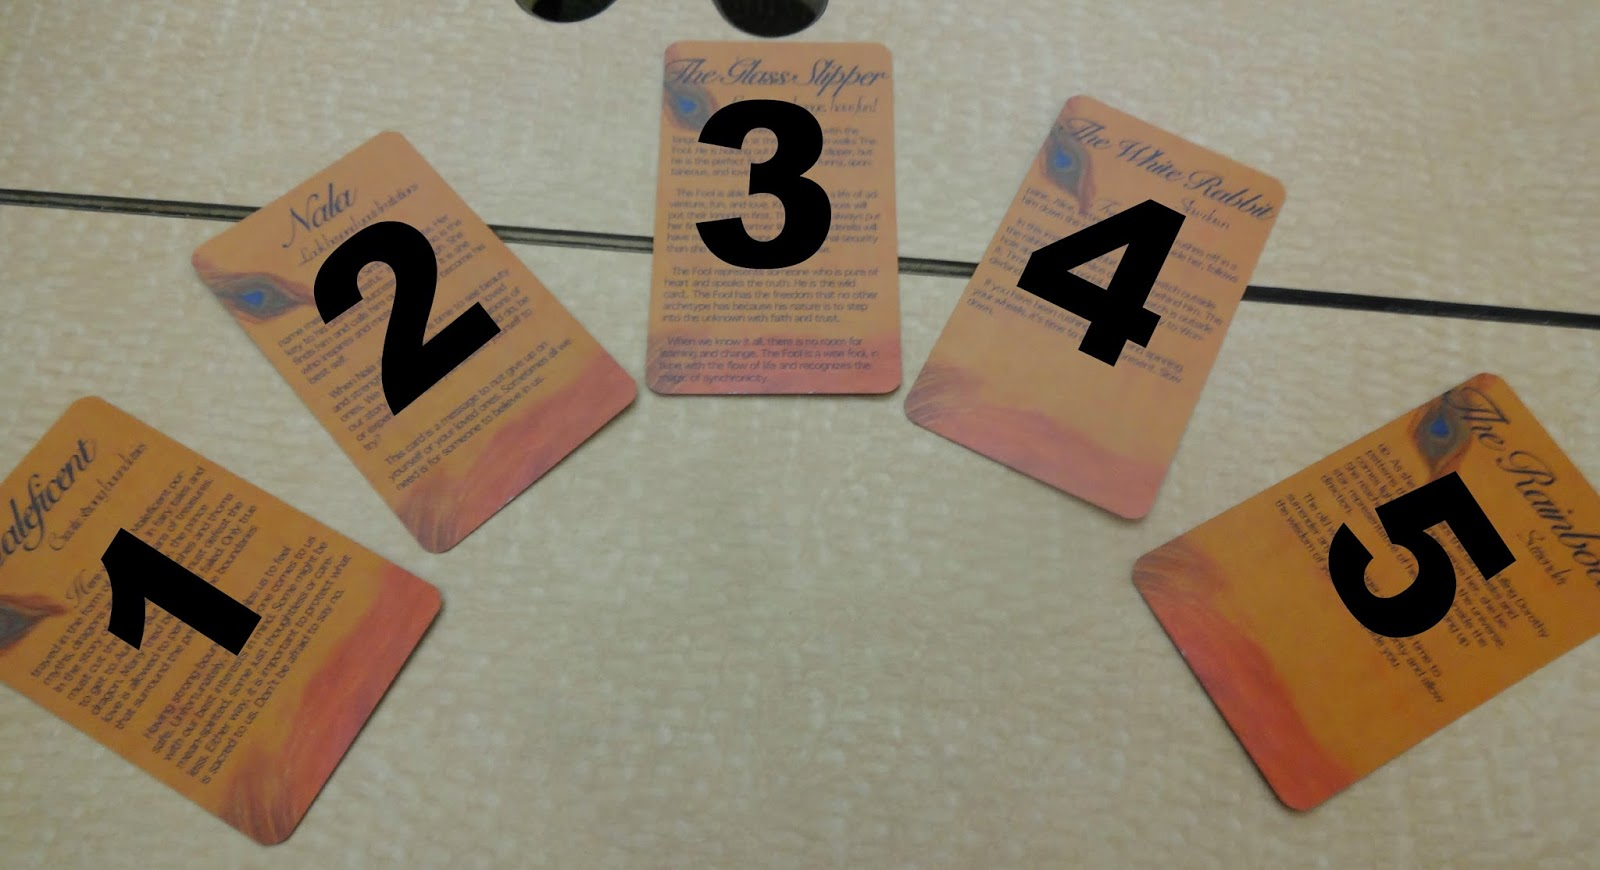 5 cards fanned out on a table